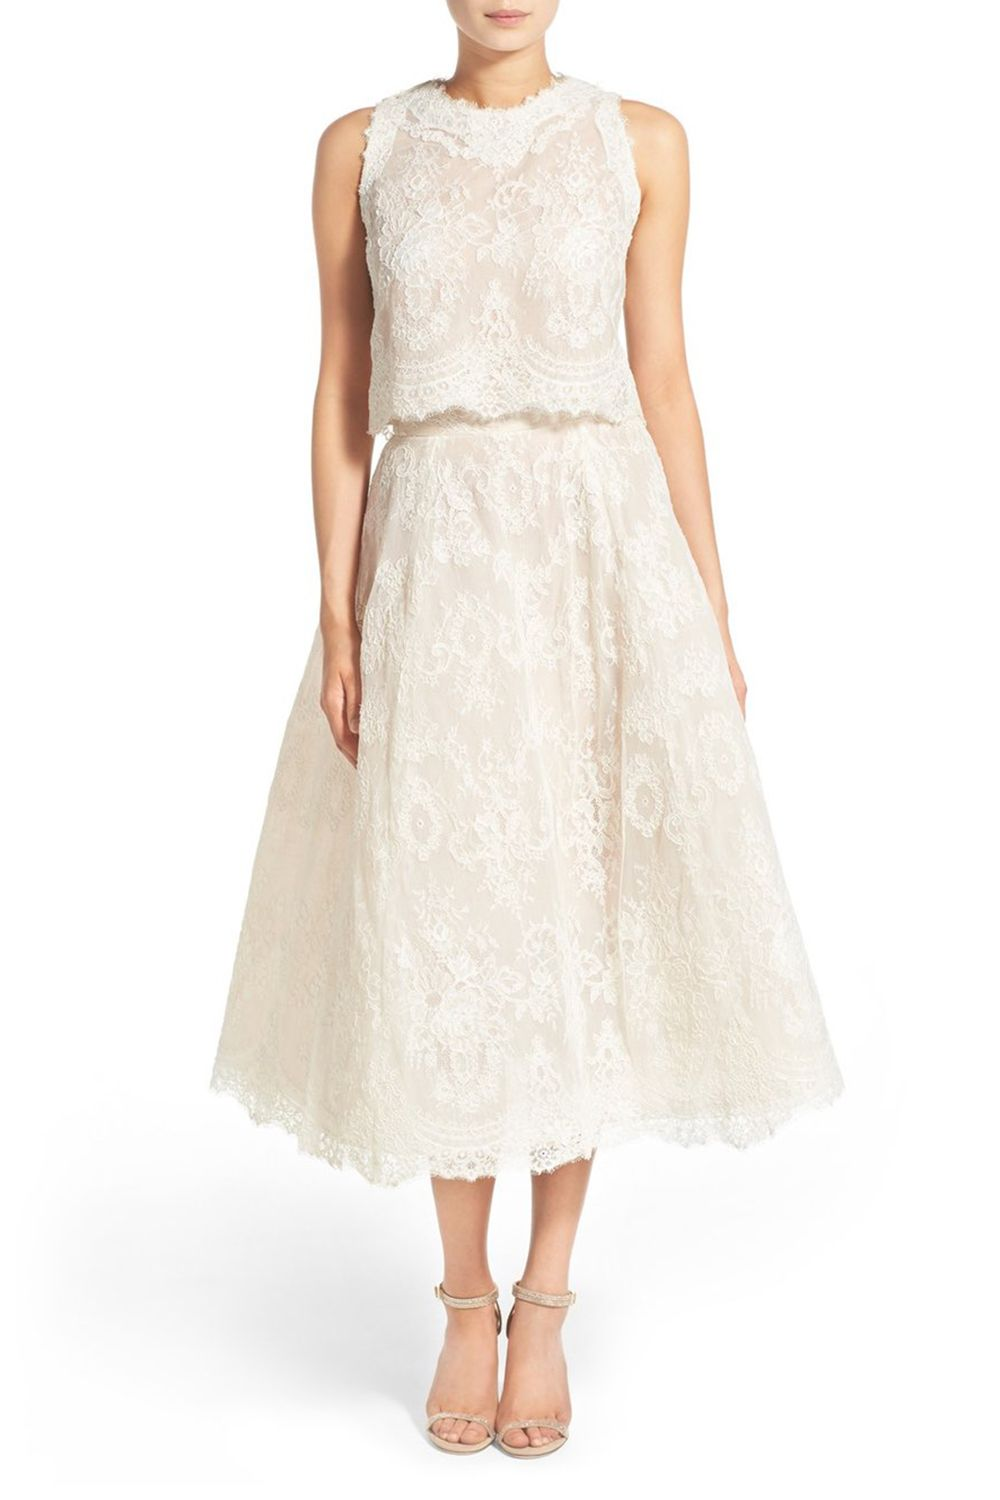 "<p>Everybody likes a two-fer, and everybody likes an Audrey Hepburn reference even more.&nbsp&#x3B;</p><p>$2,208, <a href=""http://shop.nordstrom.com/s/embrdrd-lace-crop-top-skirt/4247466?origin=category-personalizedsort&amp&#x3B;fashioncolor=SILK%20WHITE%2F%20NUDE"" target=""_blank"" data-tracking-id=""recirc-text-link"">shop.nordstrom.com</a>.</p>"